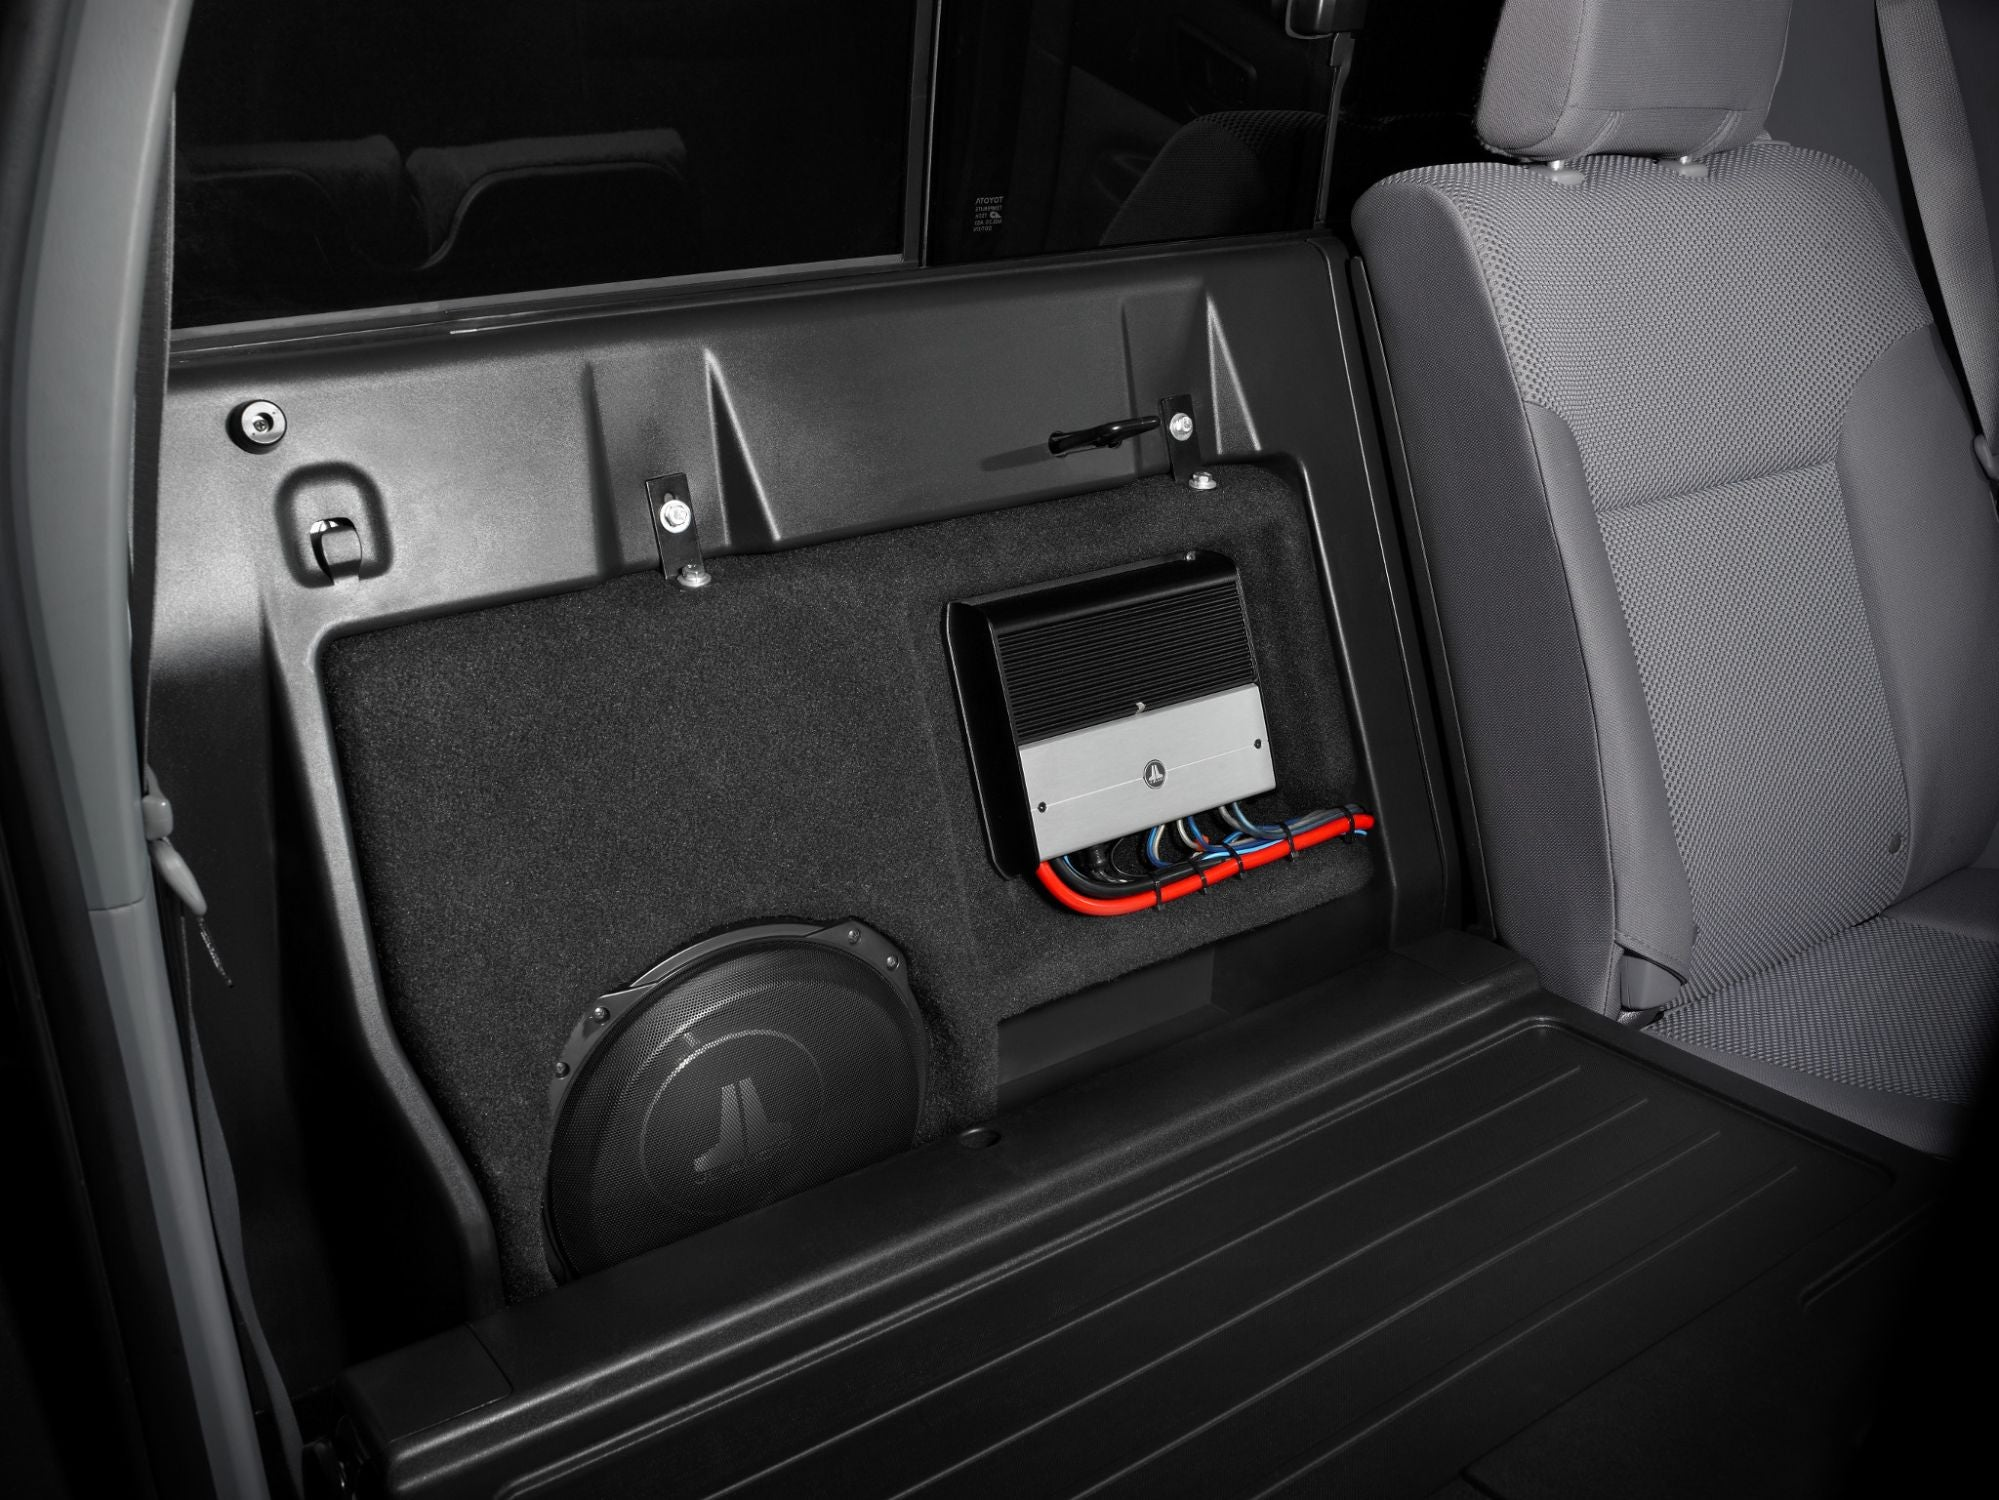 SB-T-TACDC12-10TW3 Stealthbox Installed in Vehicle